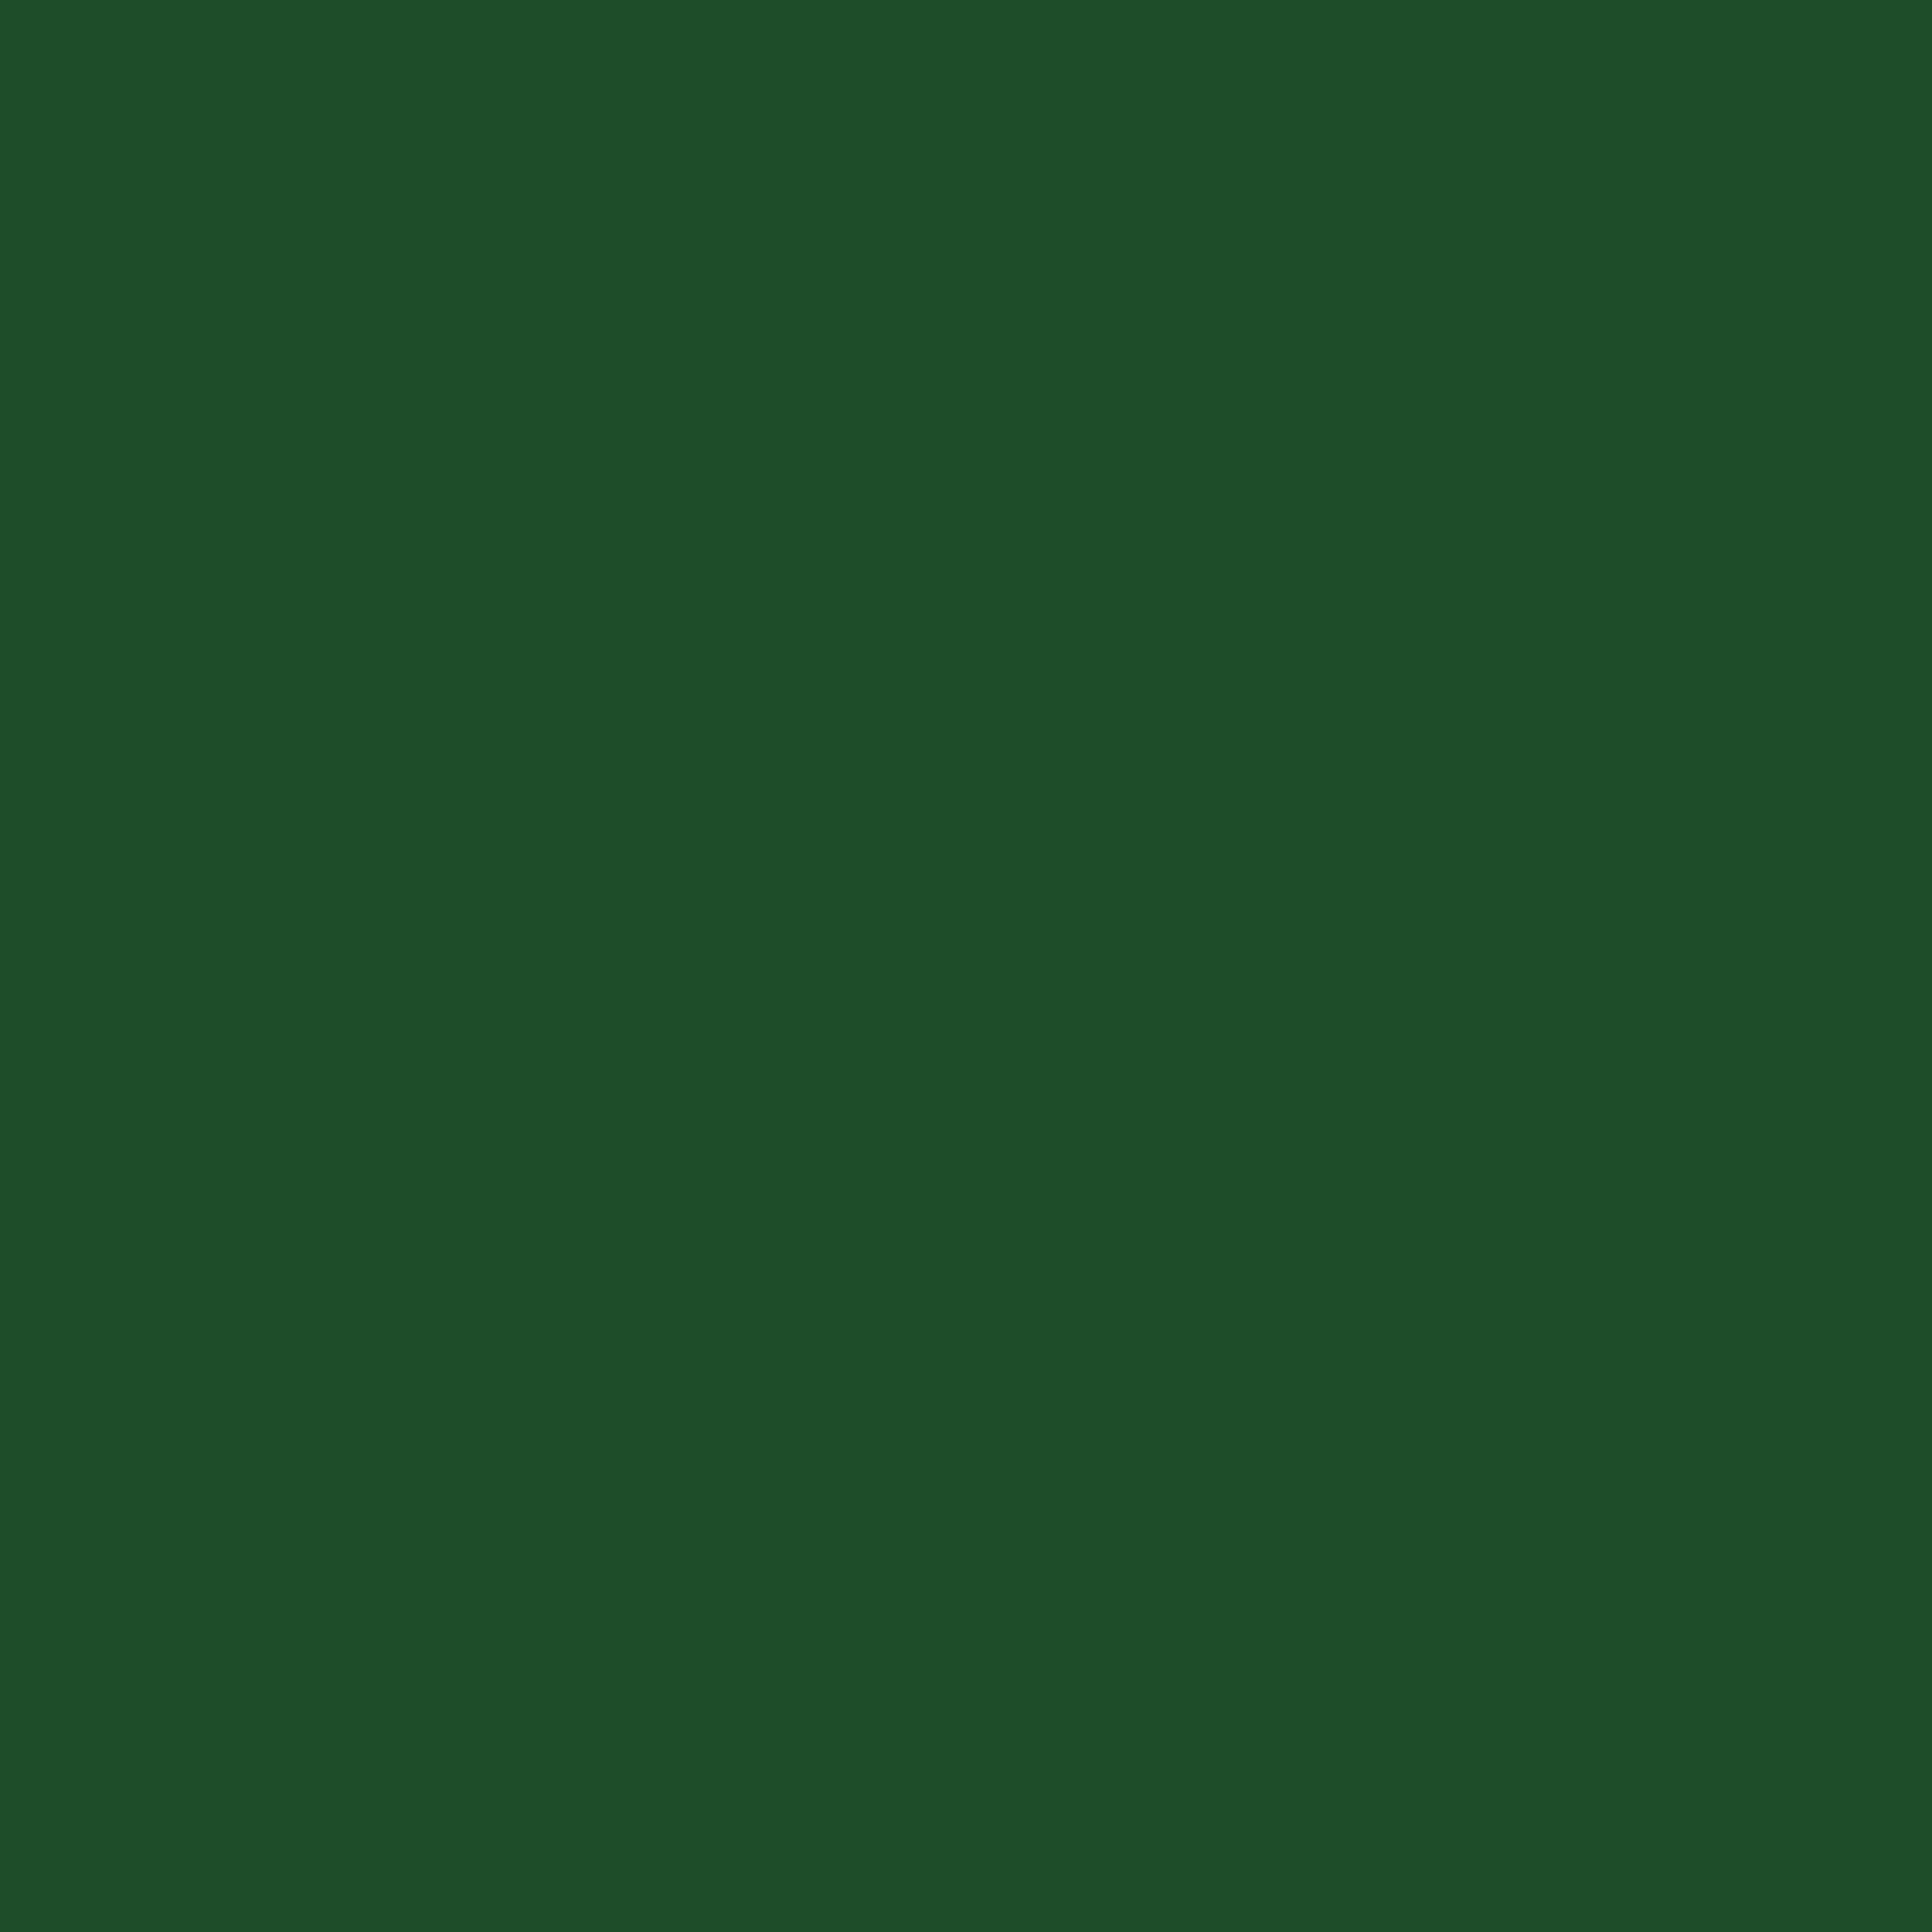 2732x2732 Cal Poly Green Solid Color Background